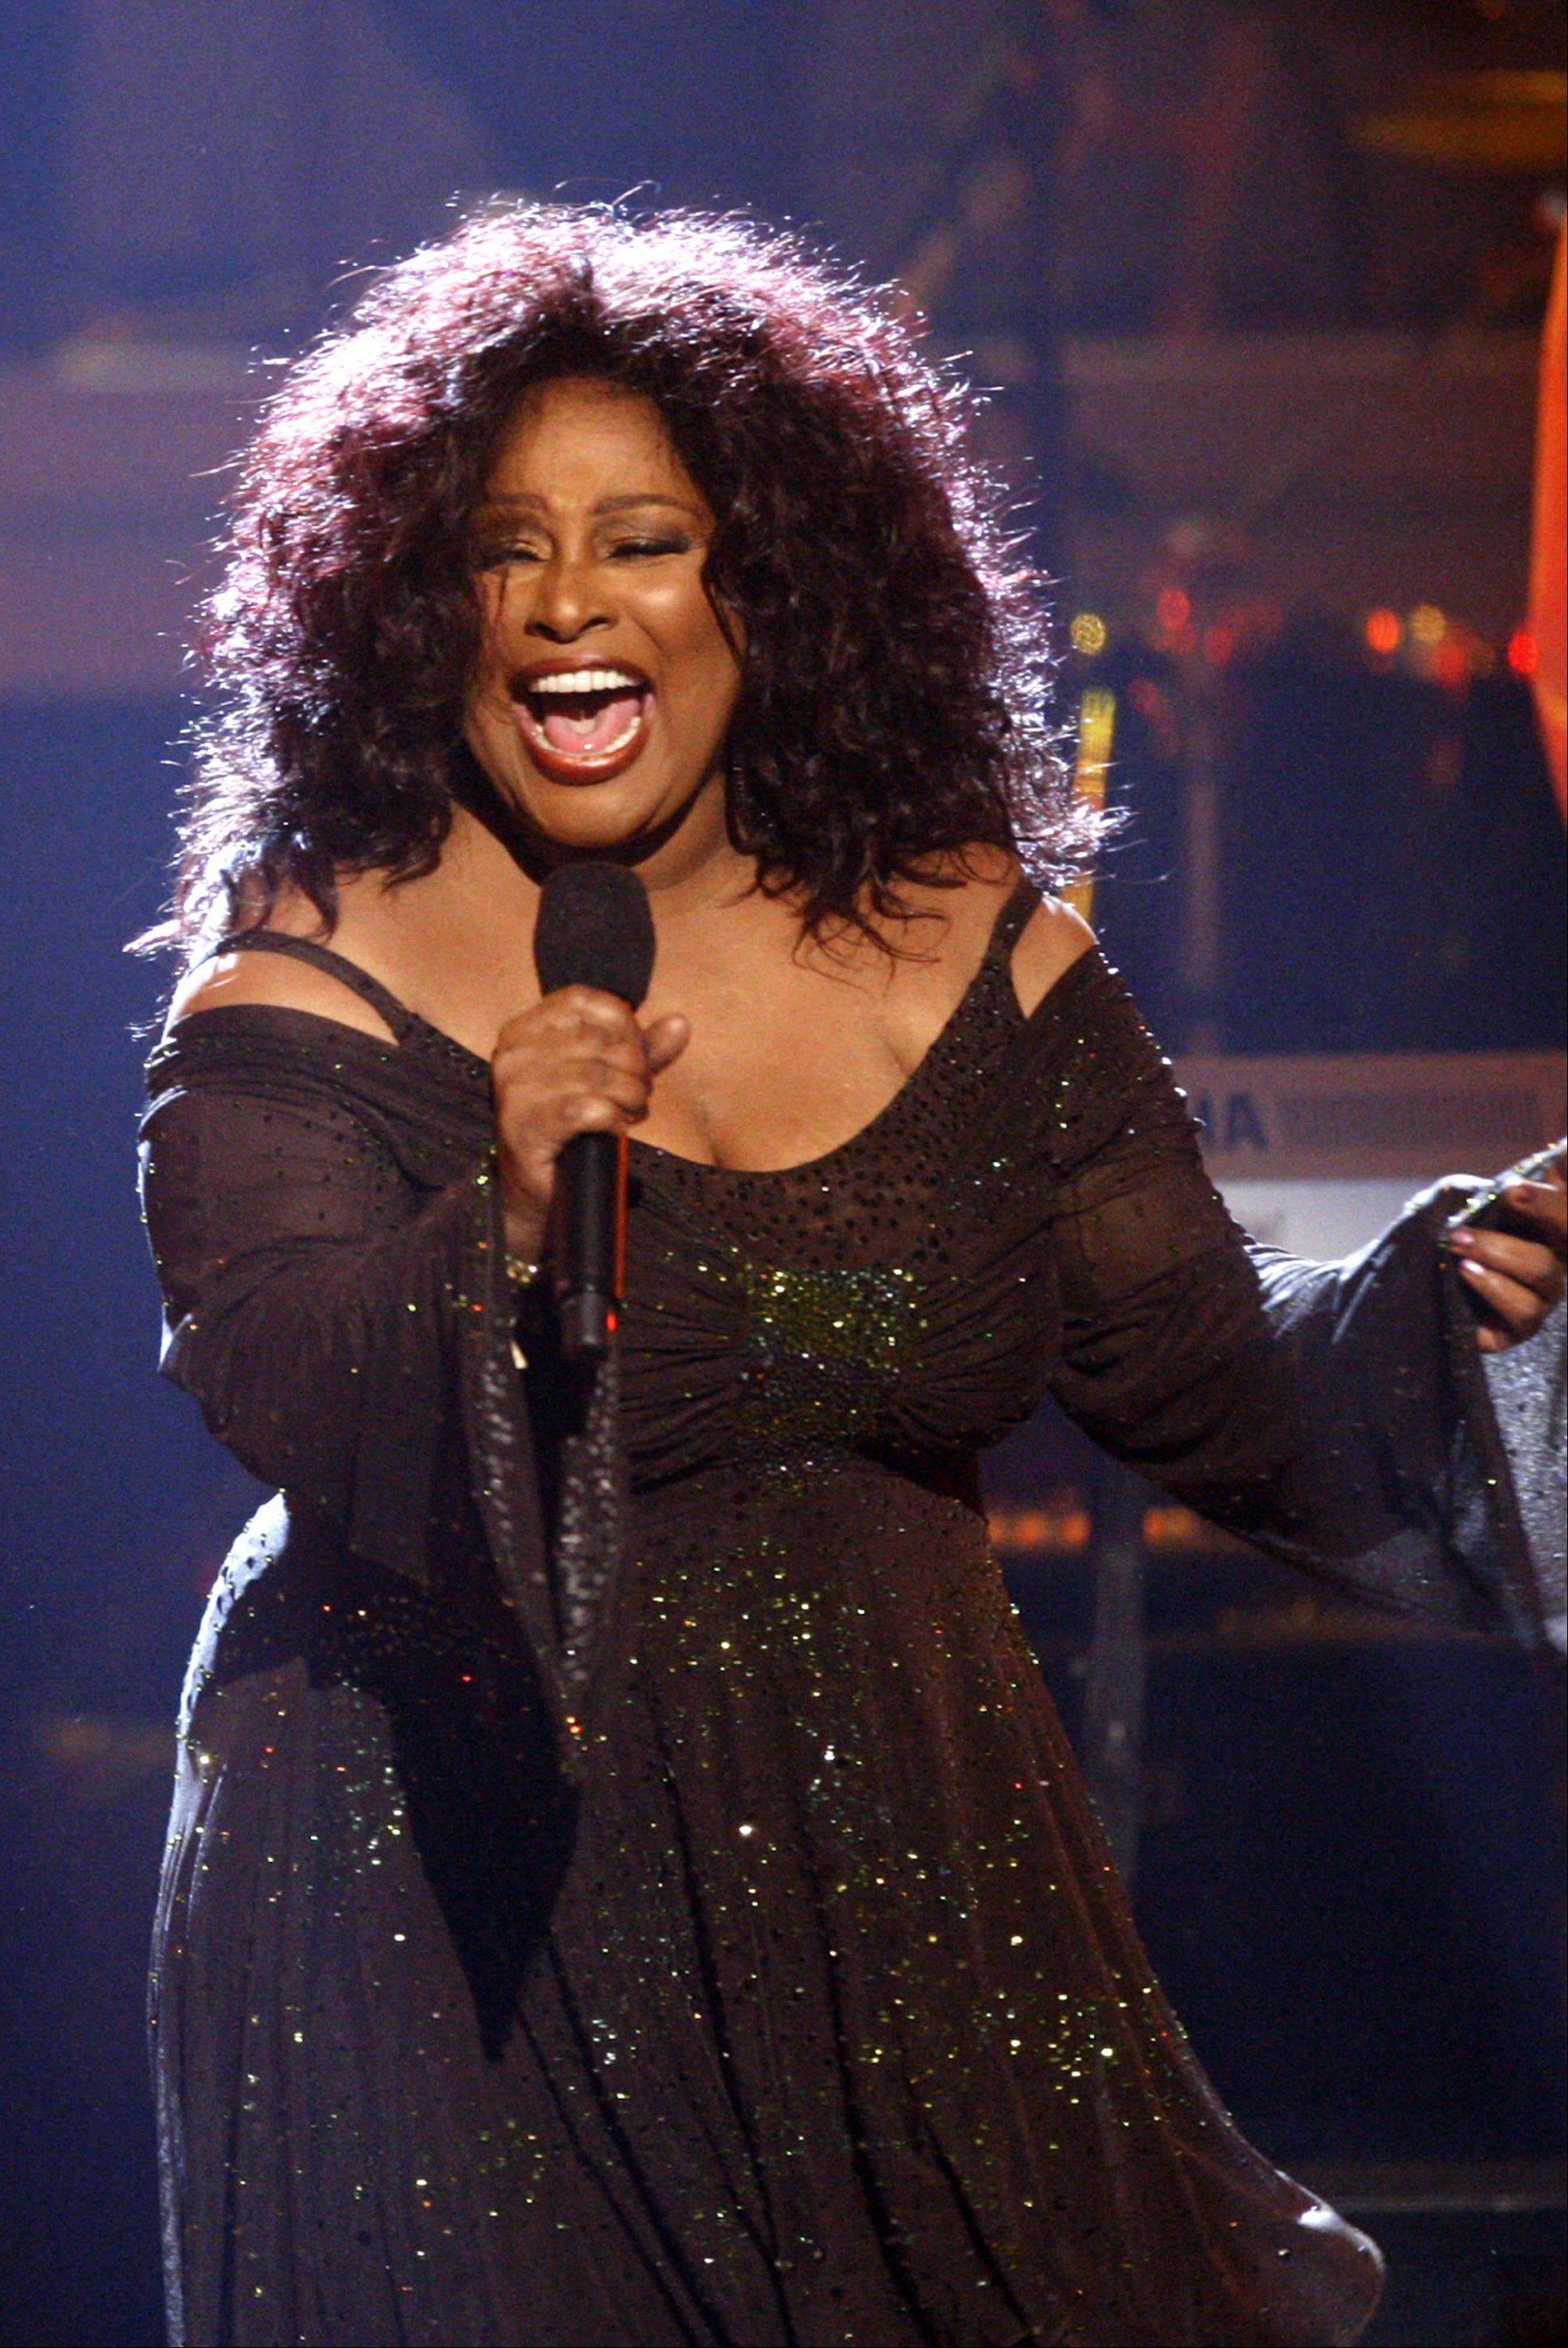 R&B star Chaka Khan will performer during the V103 25th Anniversary concert at the Allstate Arena in Rosemont on Saturday, Oct. 5.